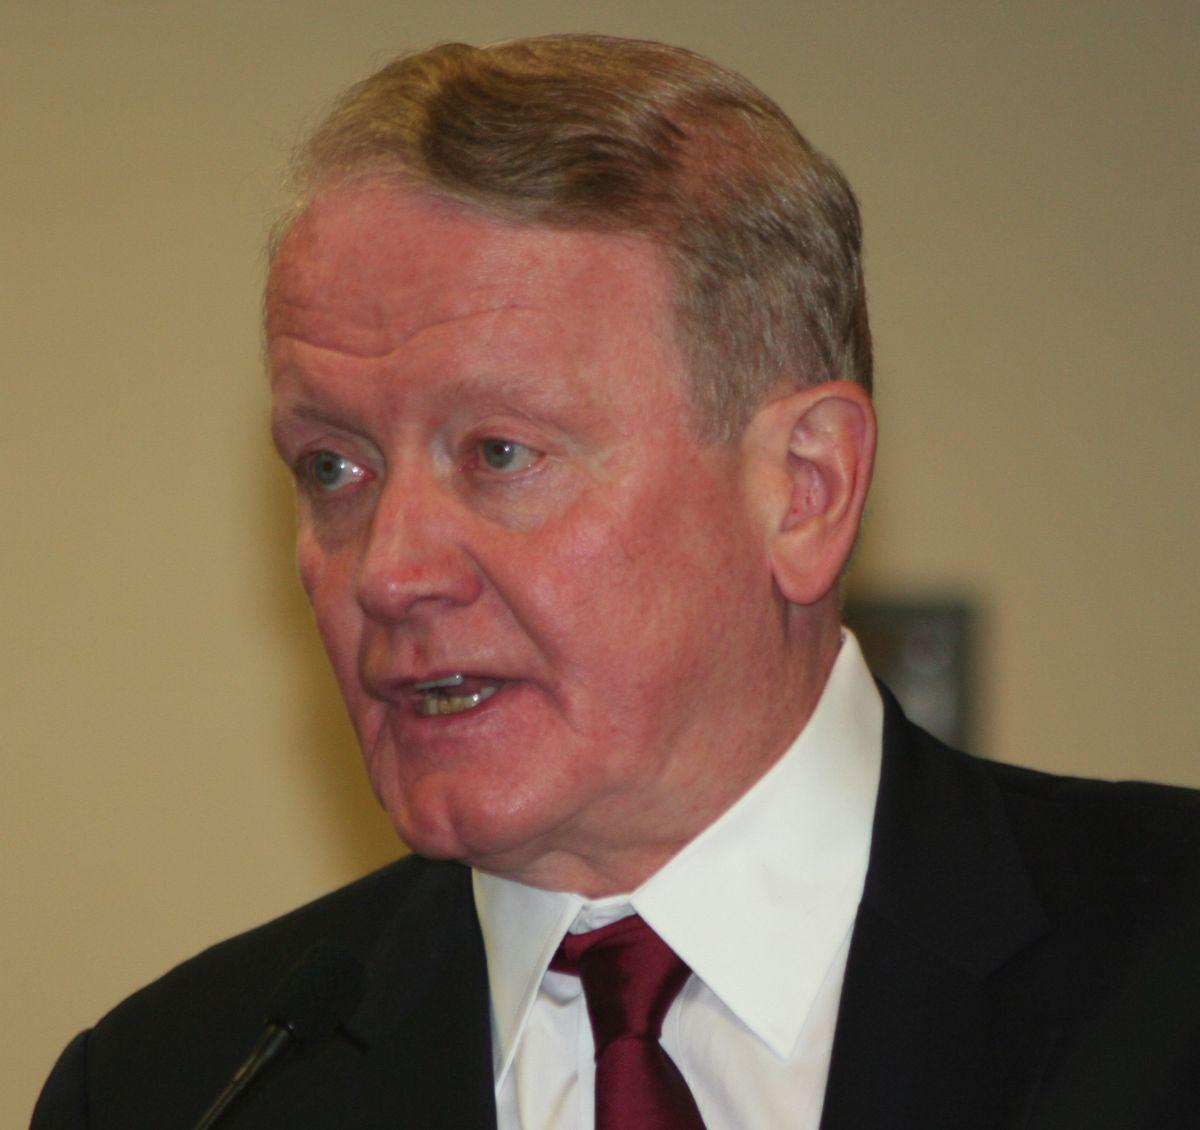 Rep. Lance to hold in-person town hall at Raritan Valley Community College